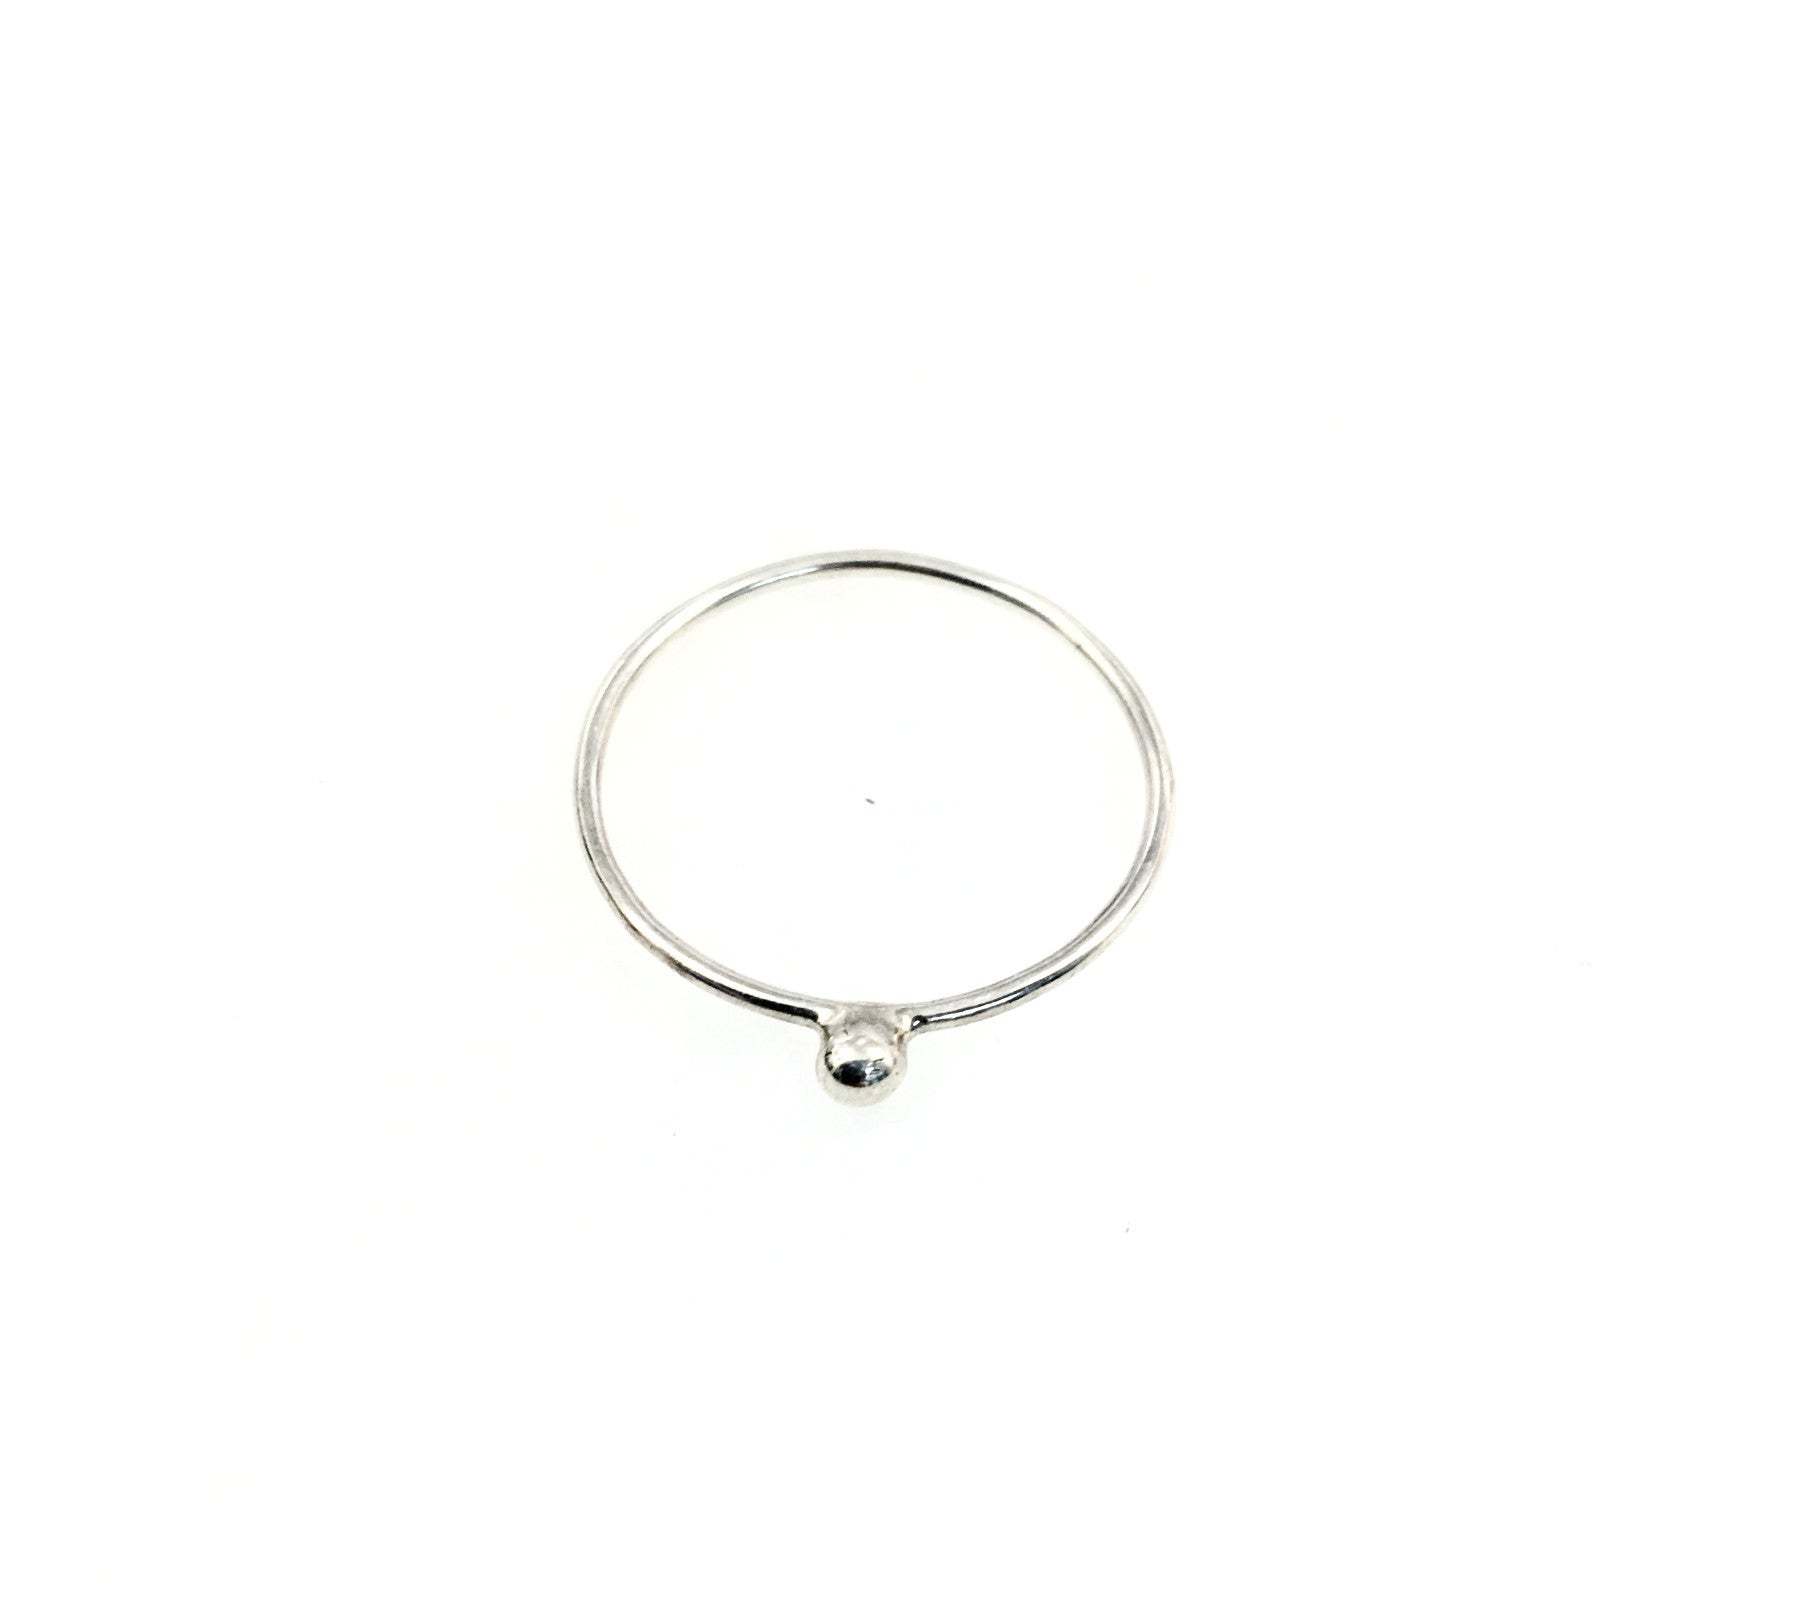 THE PIECE - Riding Solo ring